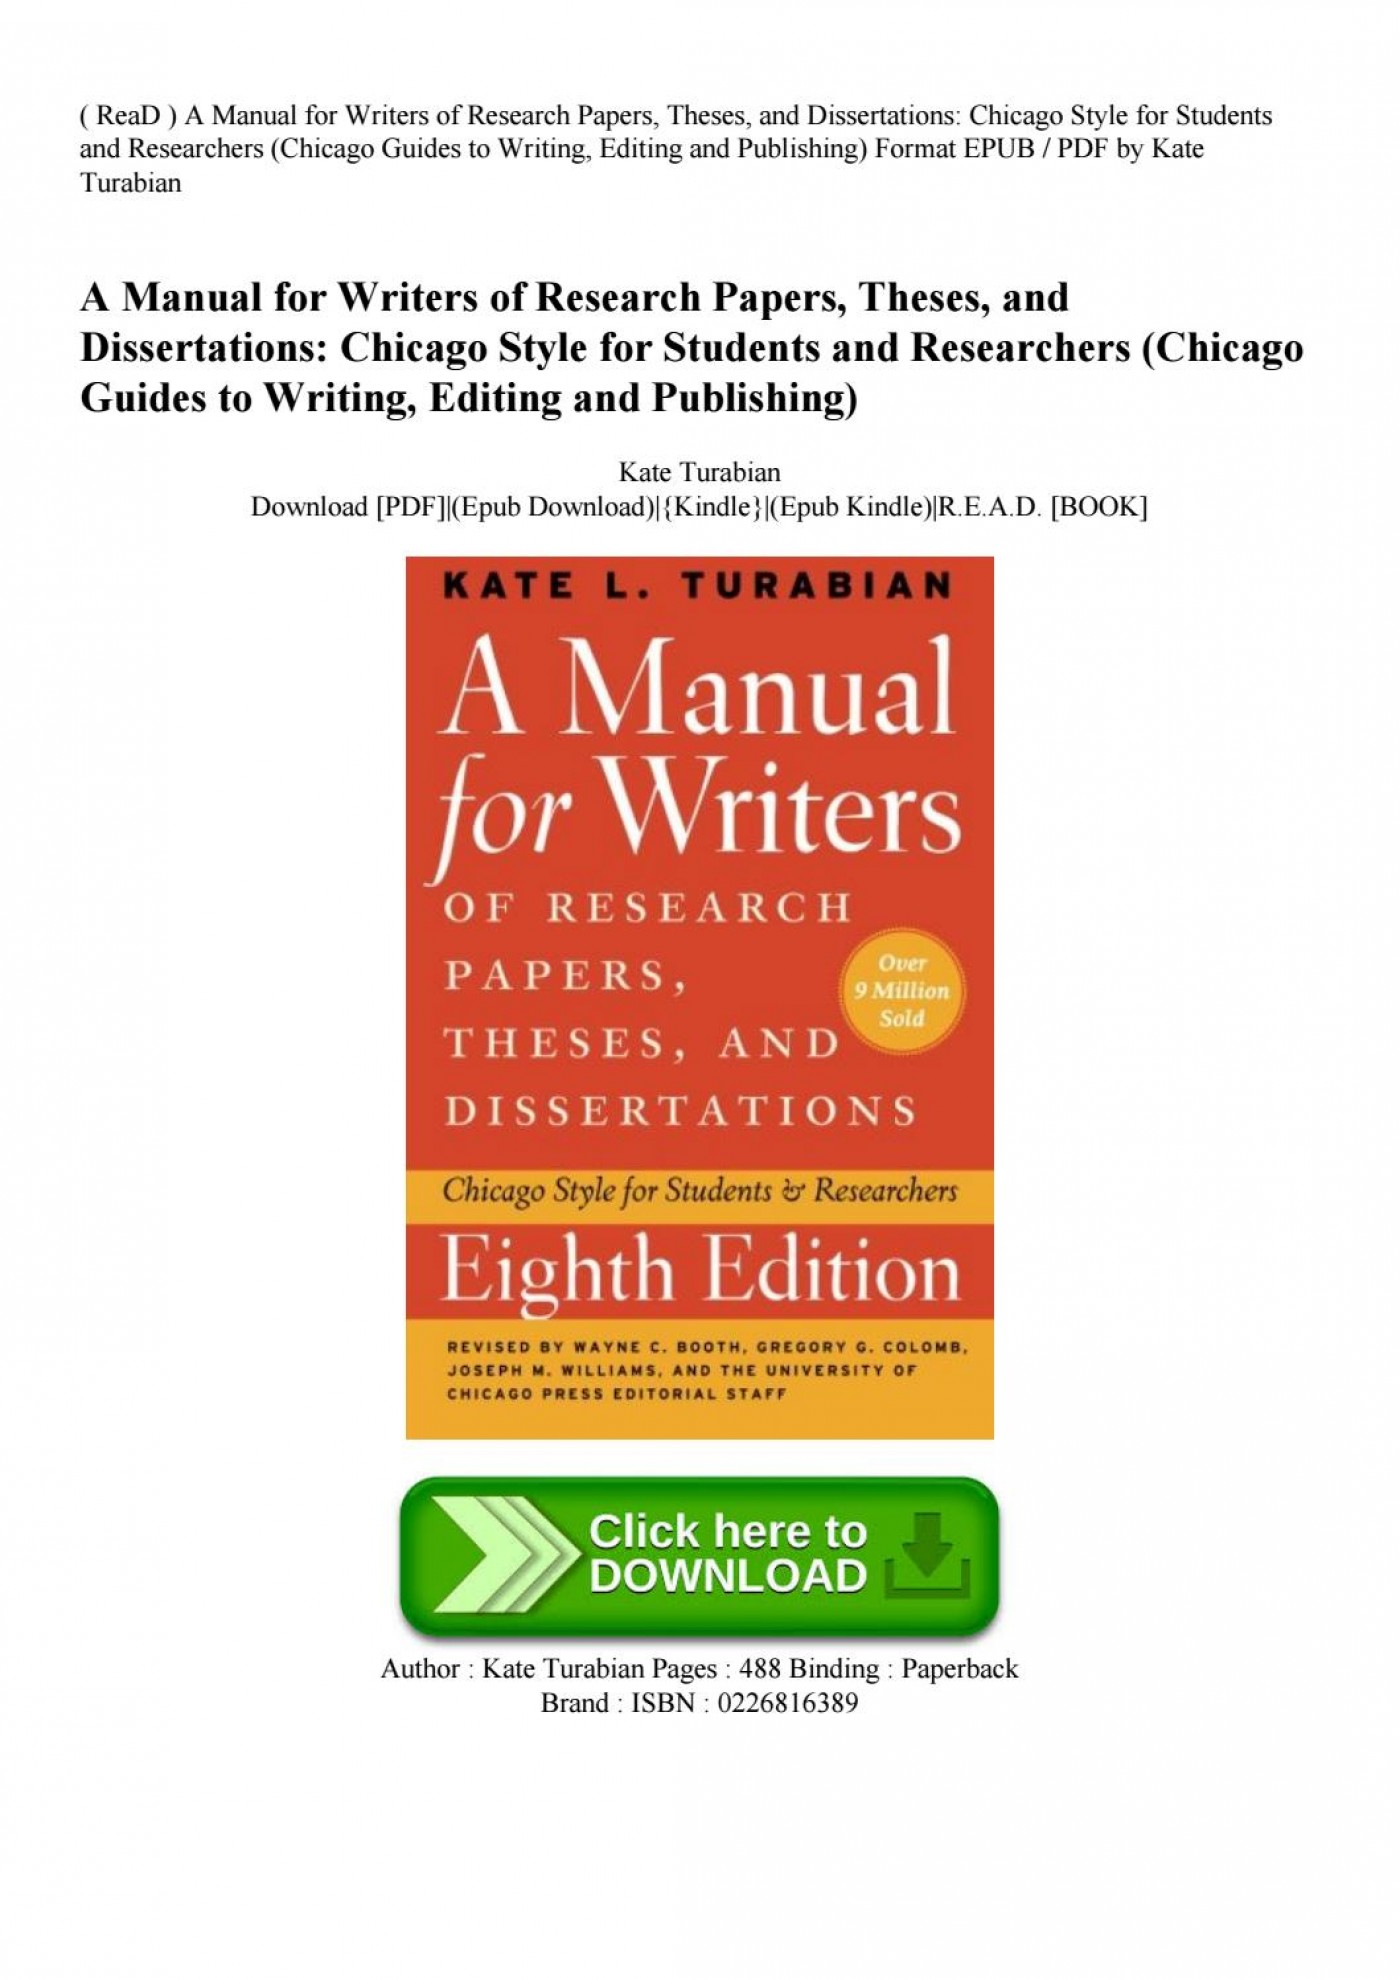 010 Research Paper Manual For Writers Of Papers Theses And Dissertations Page 1 Sensational A 8th Edition Pdf Eighth 1400